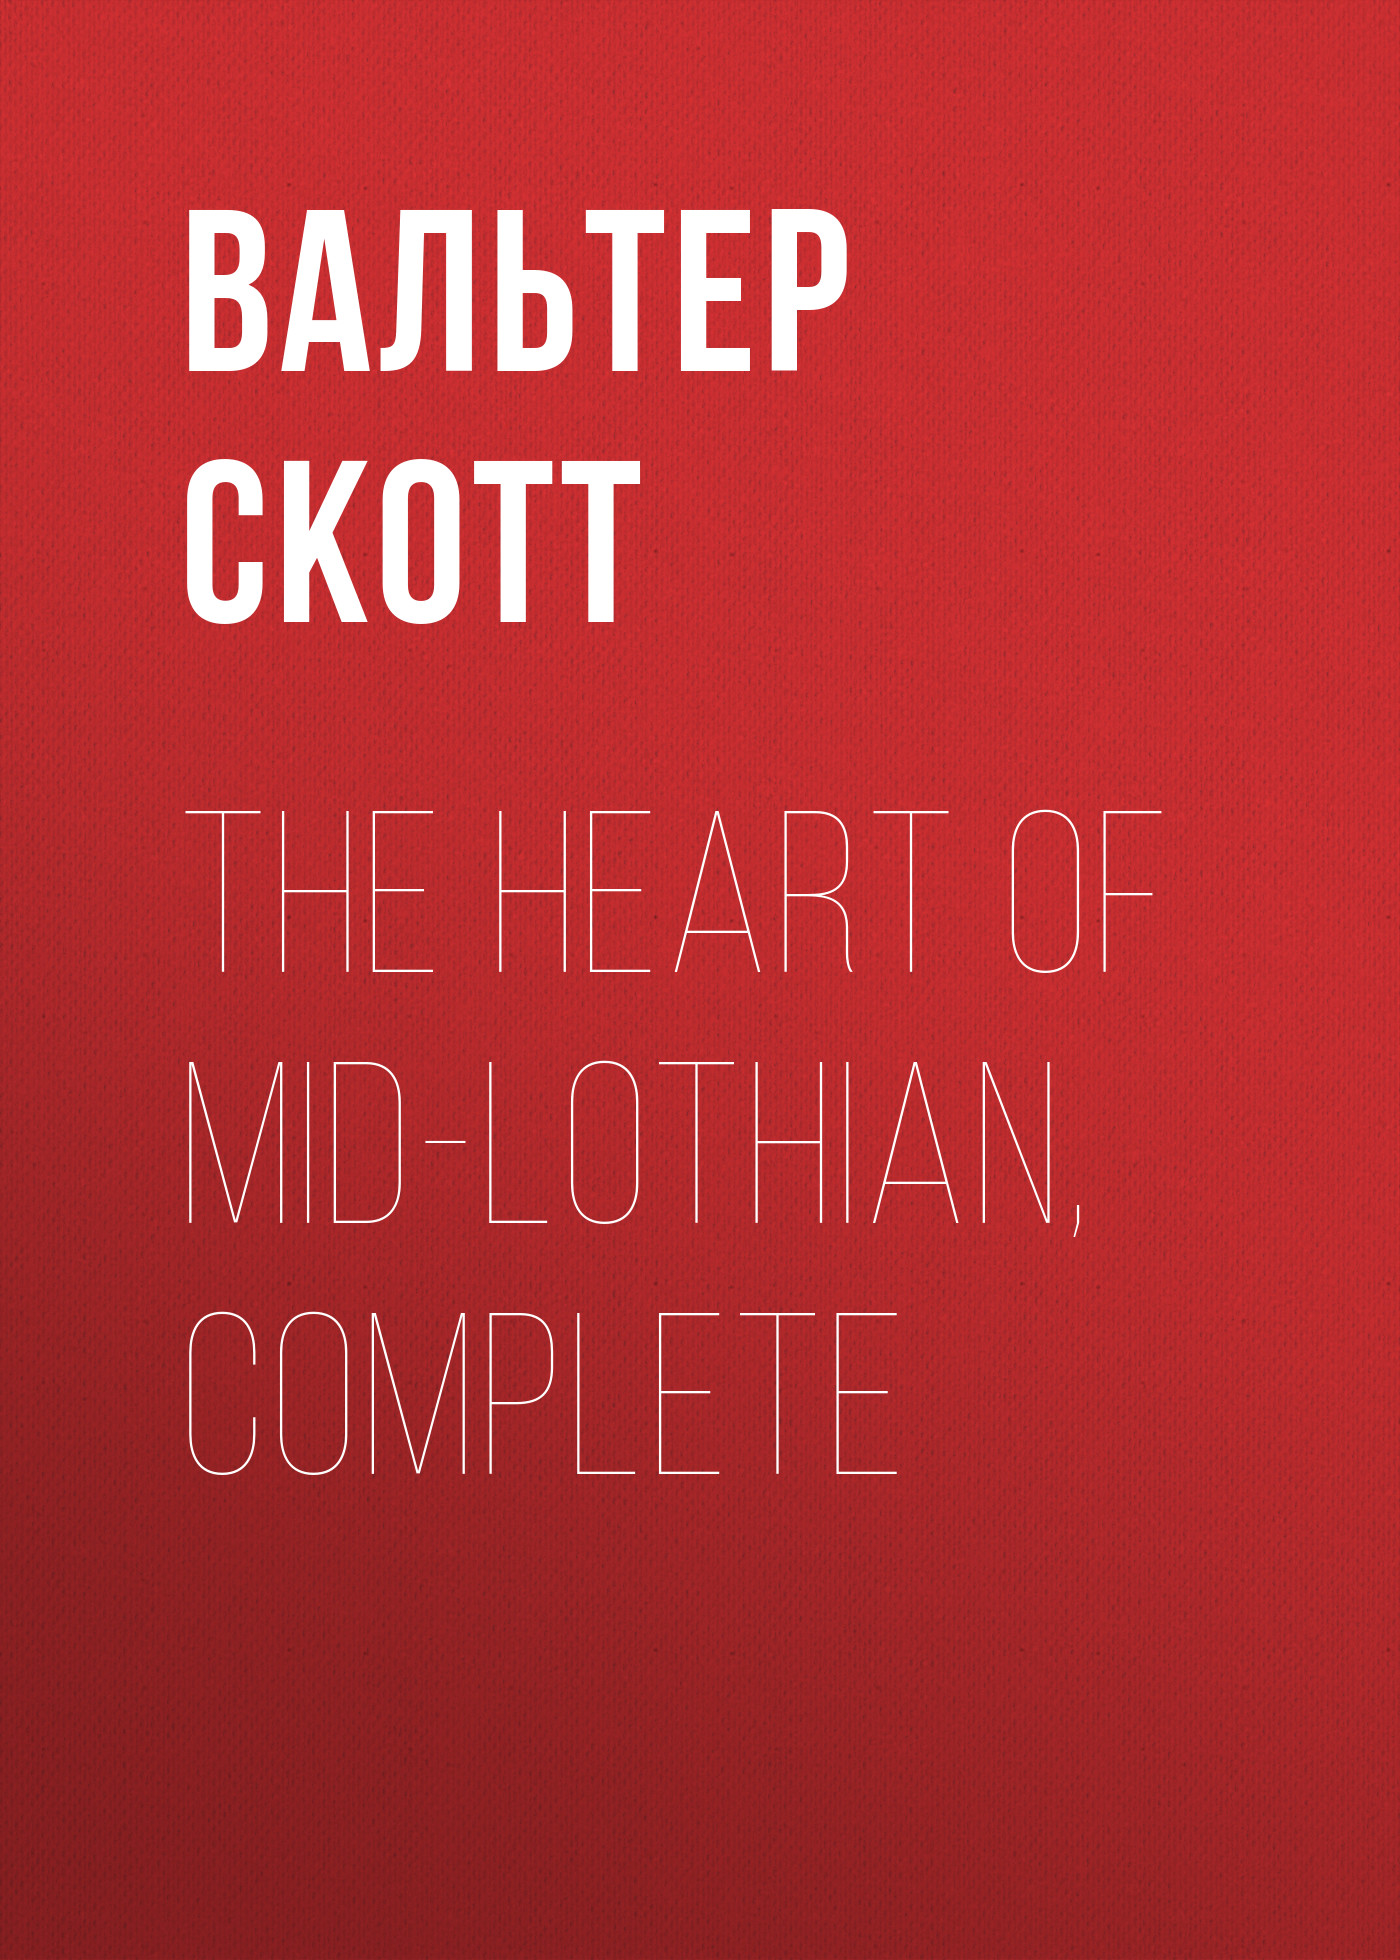 Вальтер Скотт The Heart of Mid-Lothian, Complete цена